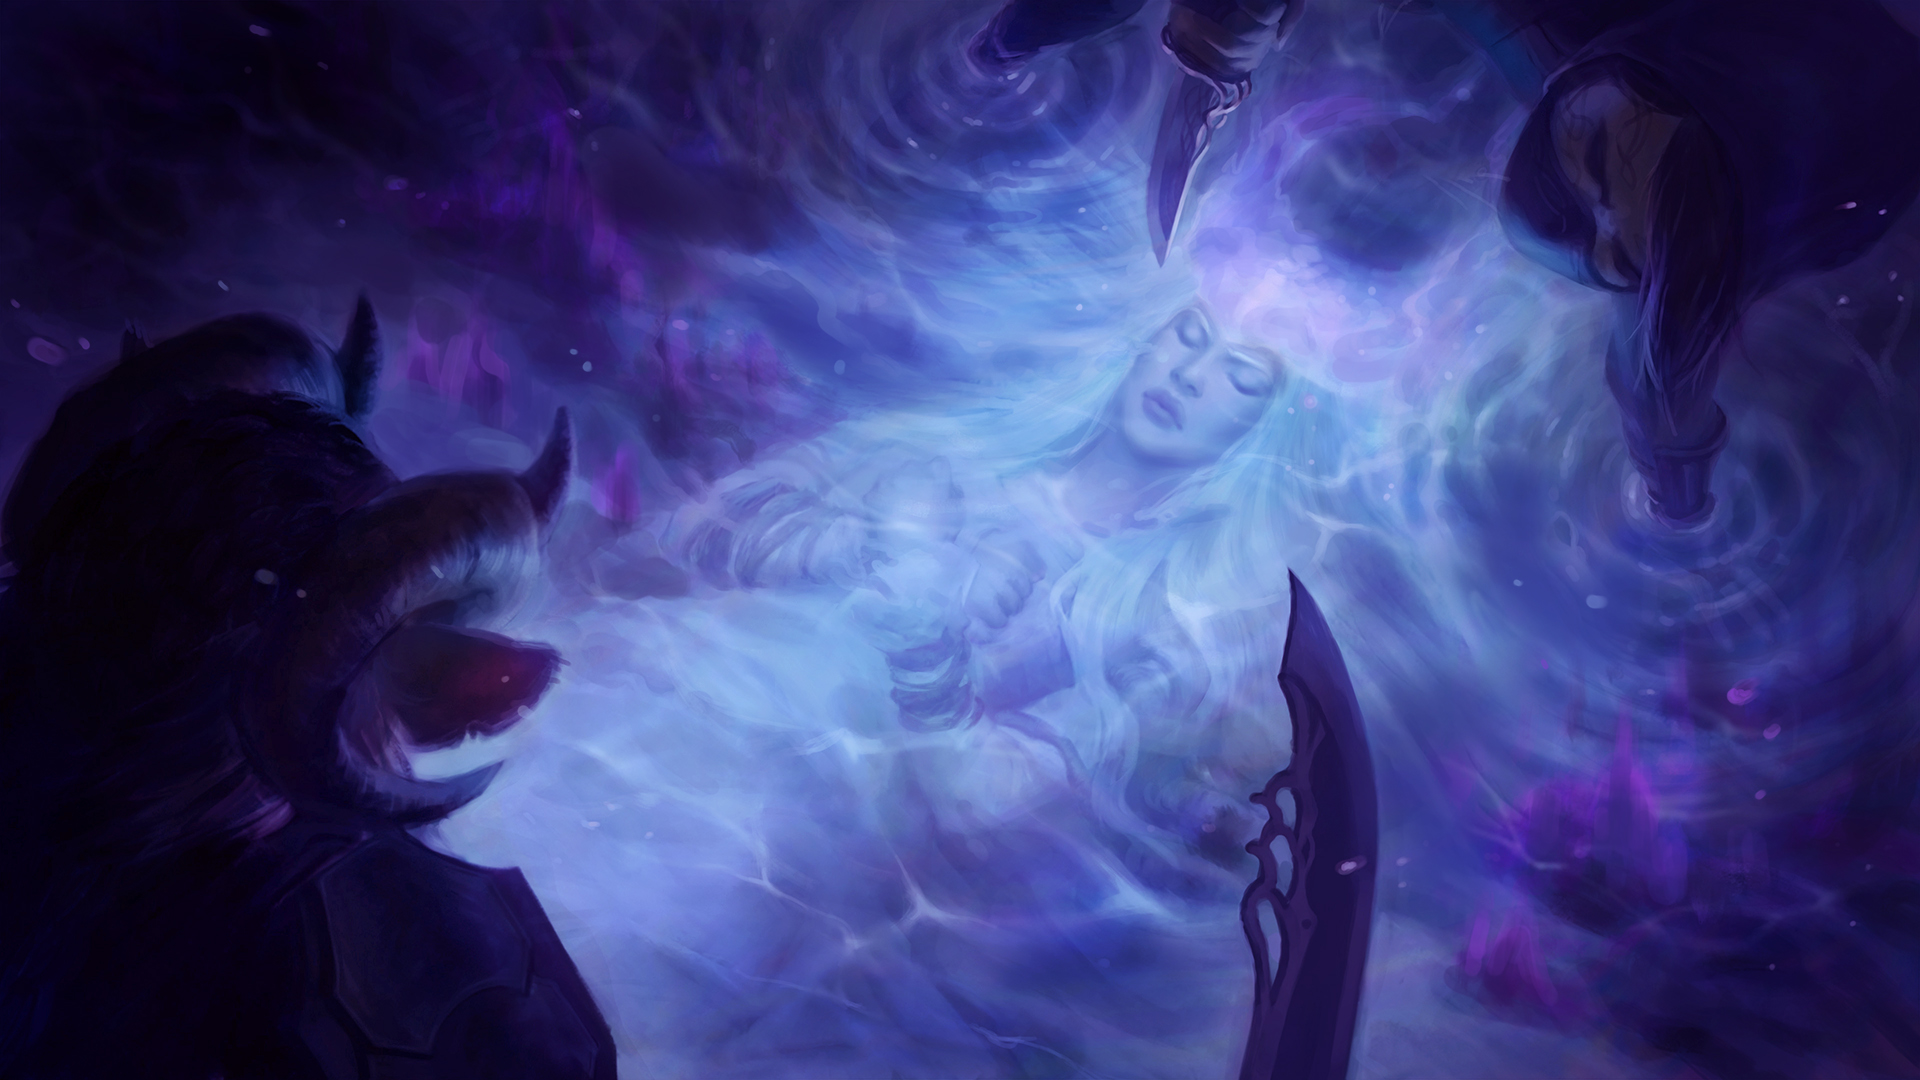 the dreaming pool universe of league of legends